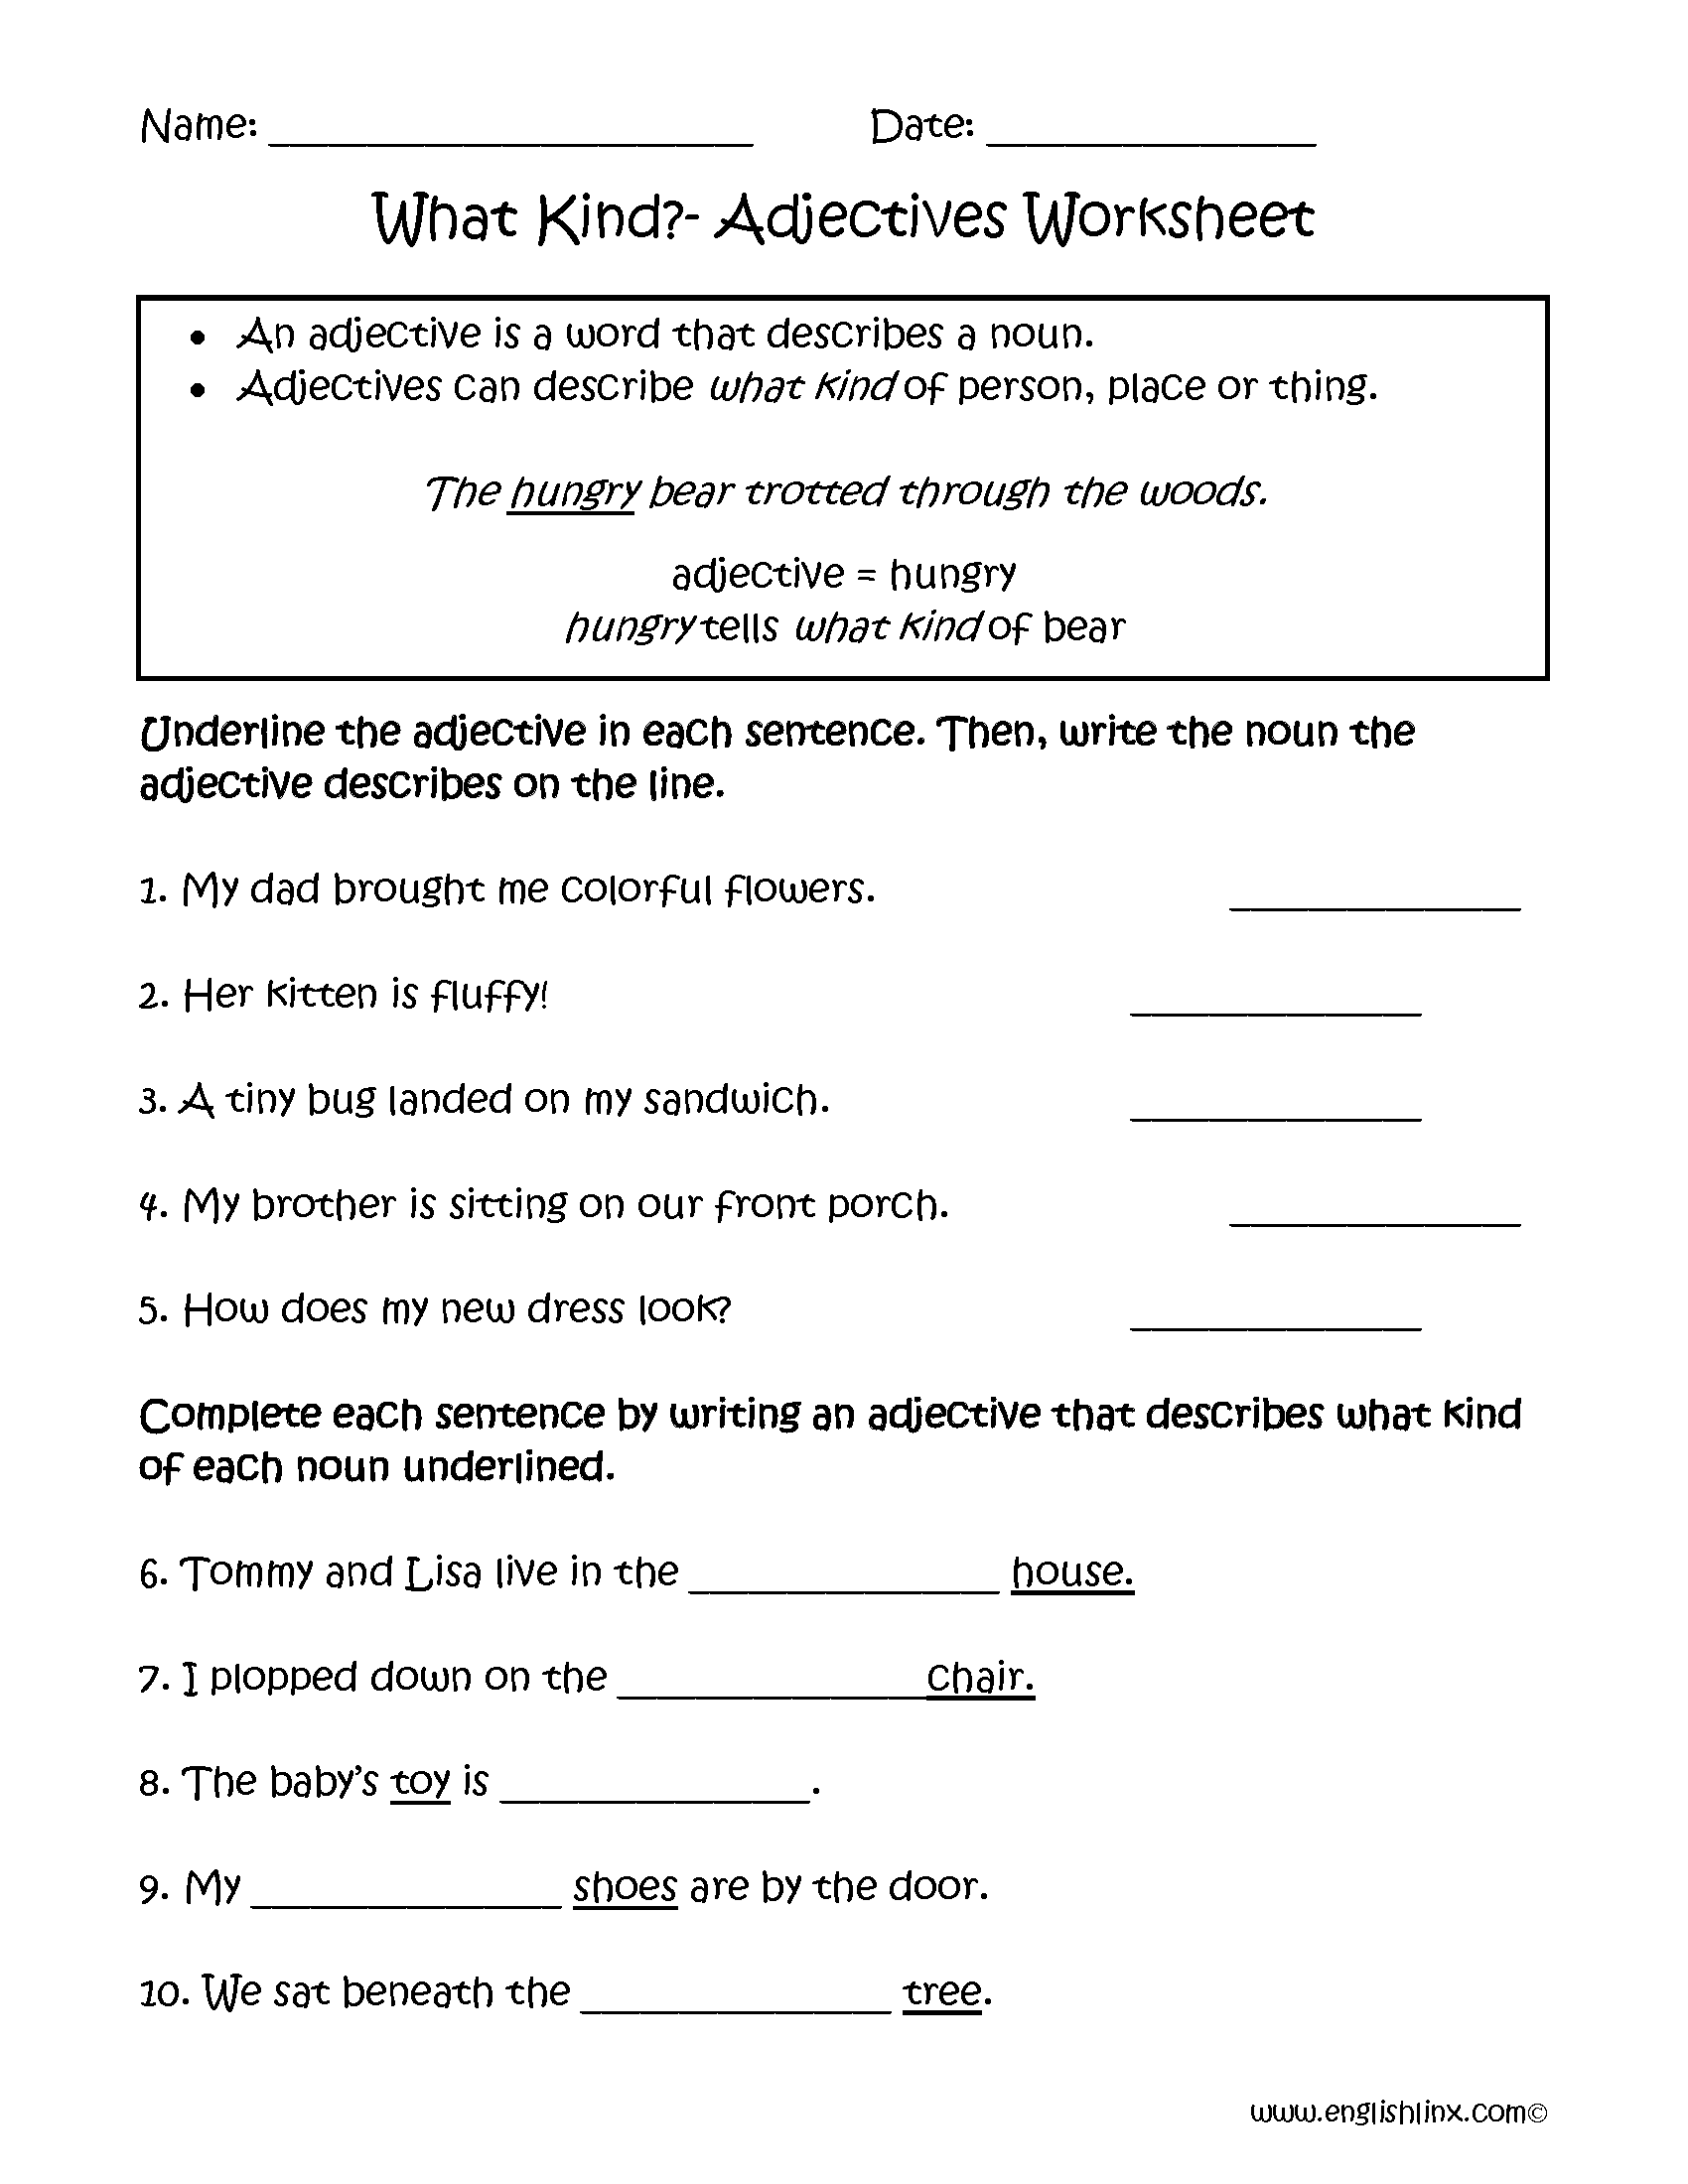 Worksheet Adjectives Worksheet Grade 5 adjectives worksheets regular worksheets